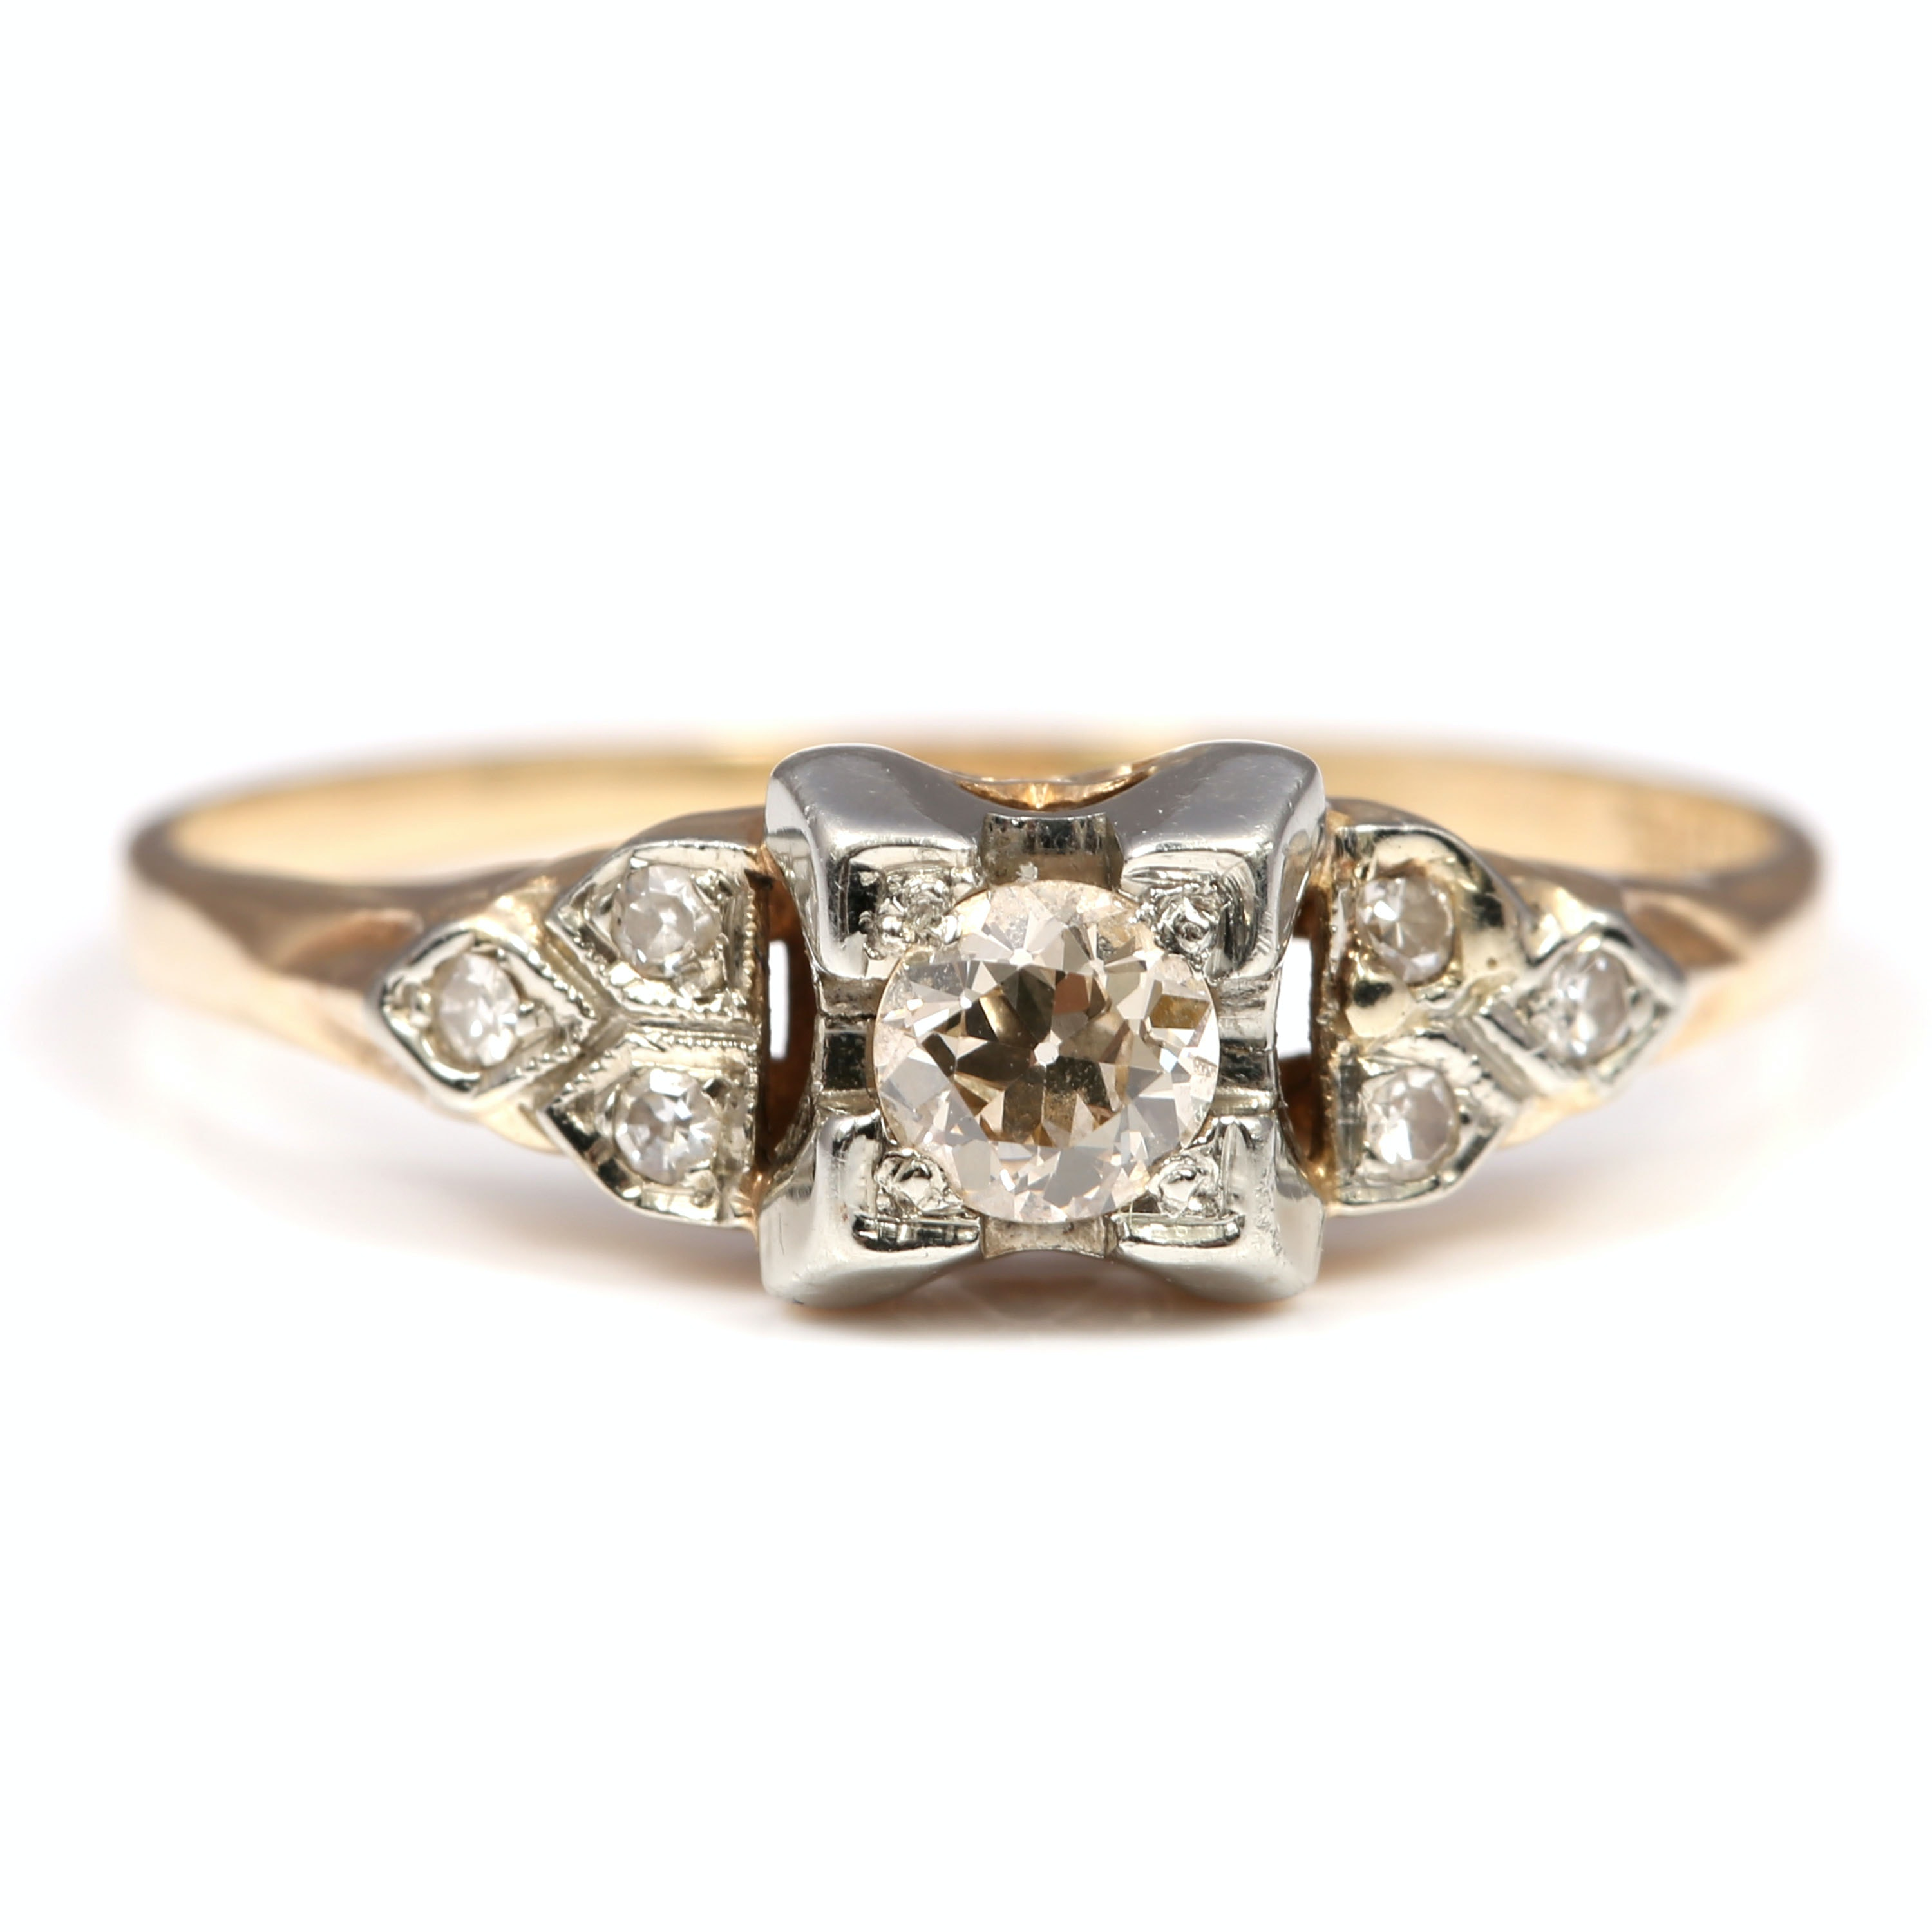 14K Yellow Gold Old European Cut Diamond Ring with 18K White Gold Prongs